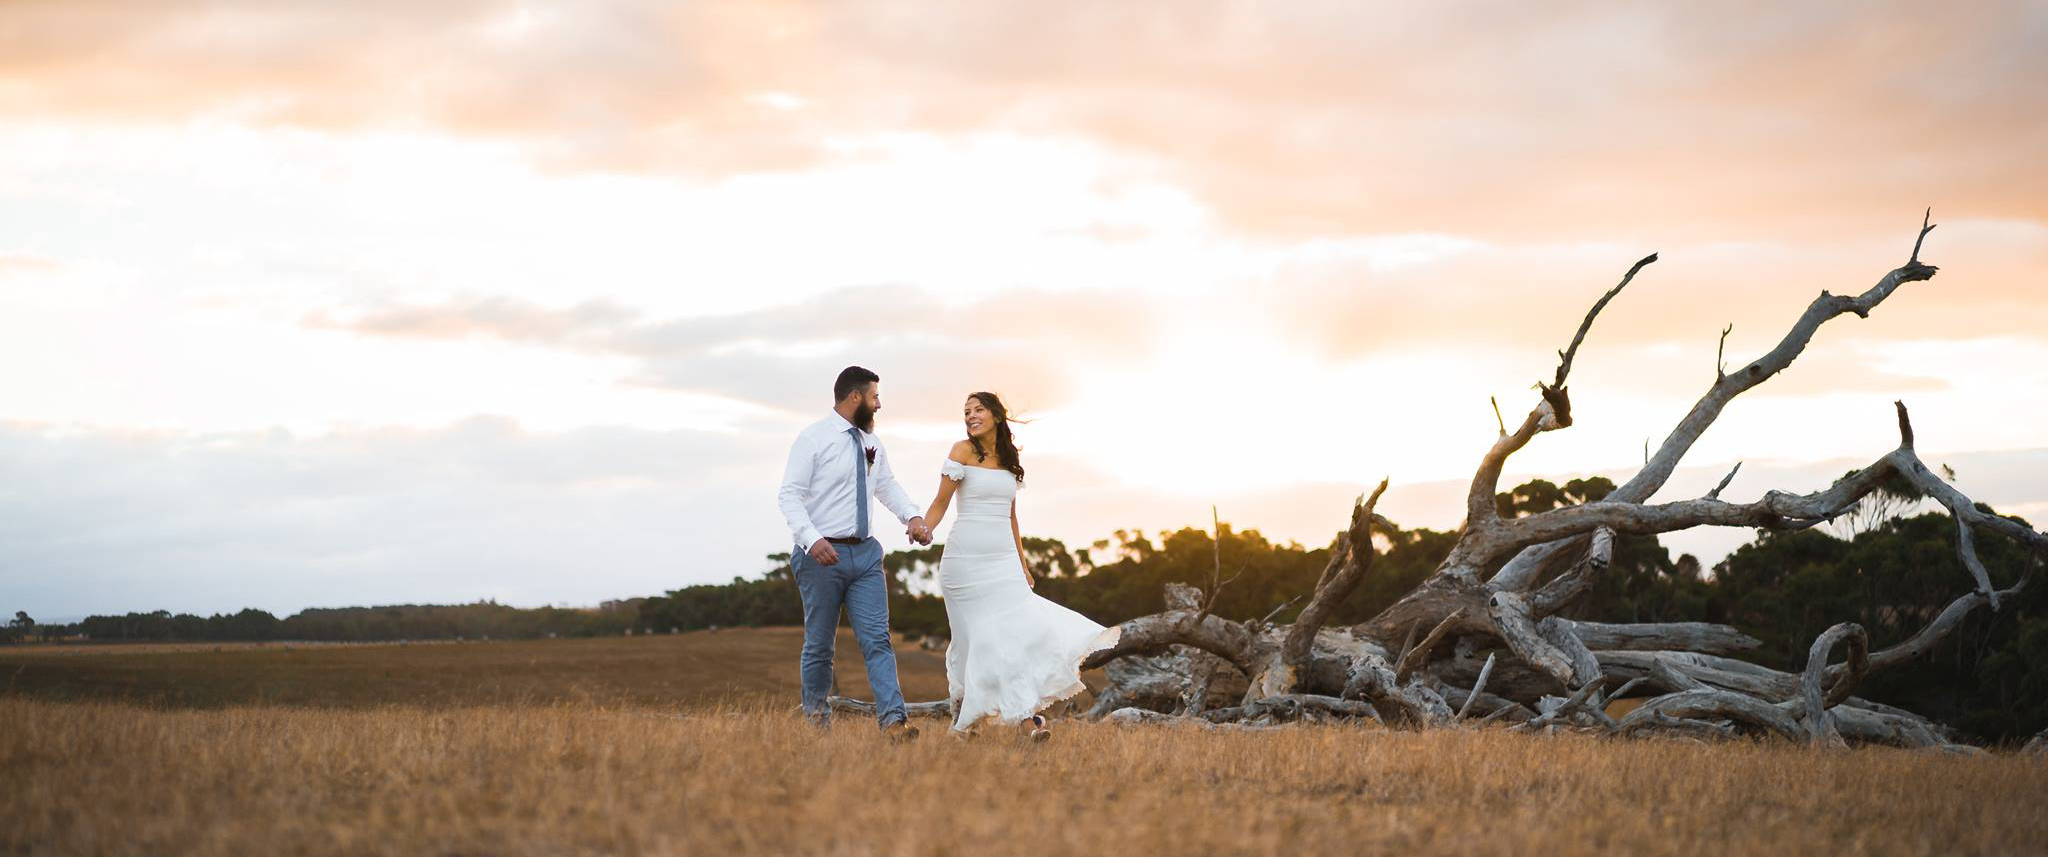 THE WEDDING OF LAURA AND MARK IN TORQUAY - This stunning wedding took place on the southwest coast of Melbourne, overlooking the incredible landscape that the Great Ocean Road has to offer. The love, humour and adventurous spirit that Laura and Mark share is truly contagious and shines through in this beautiful couple